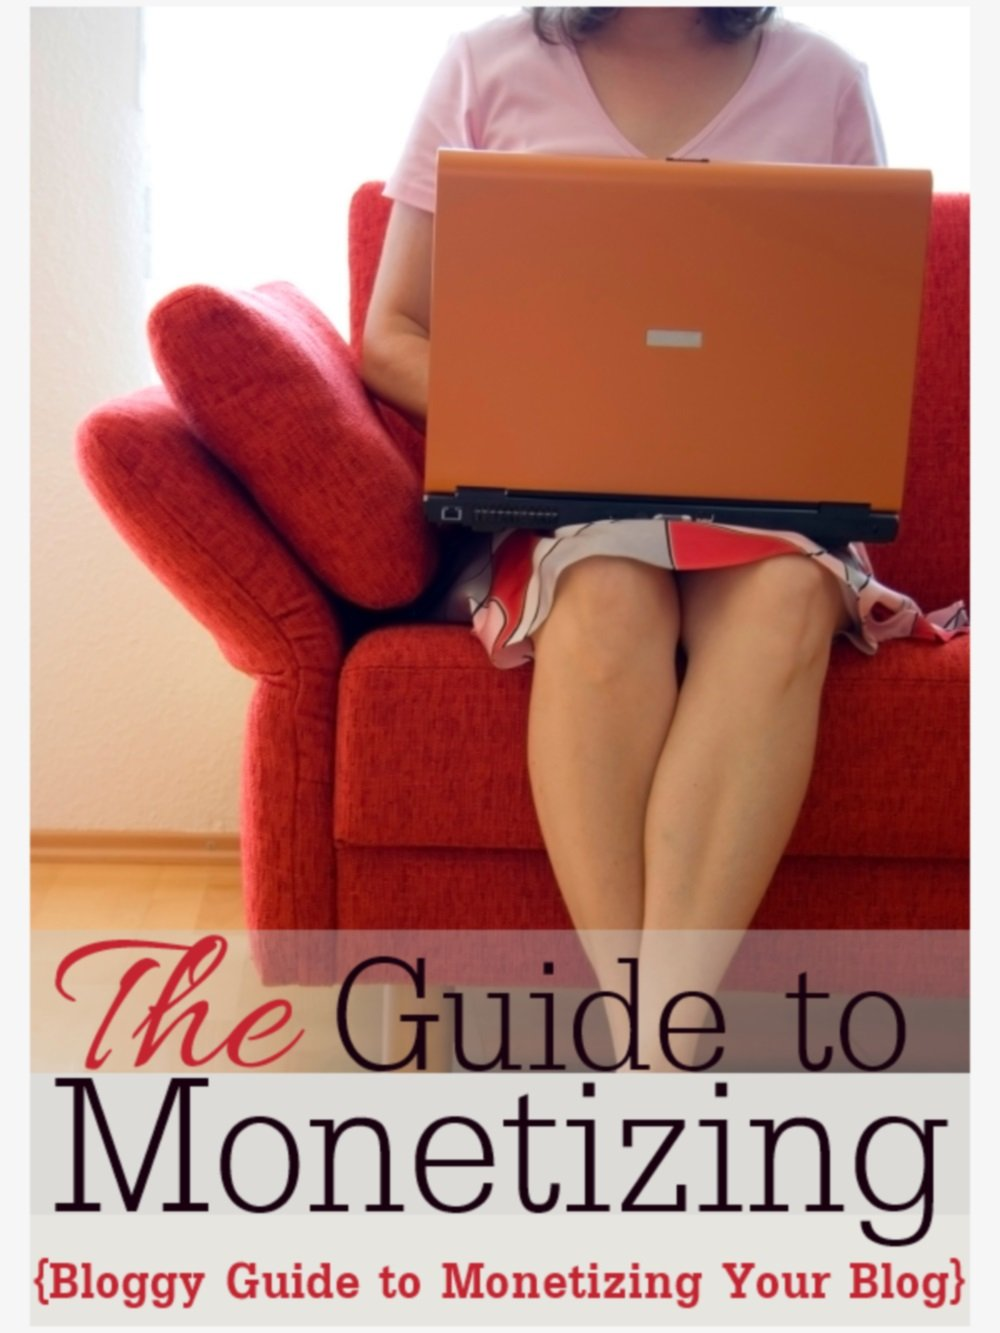 The Guide to Monetizing